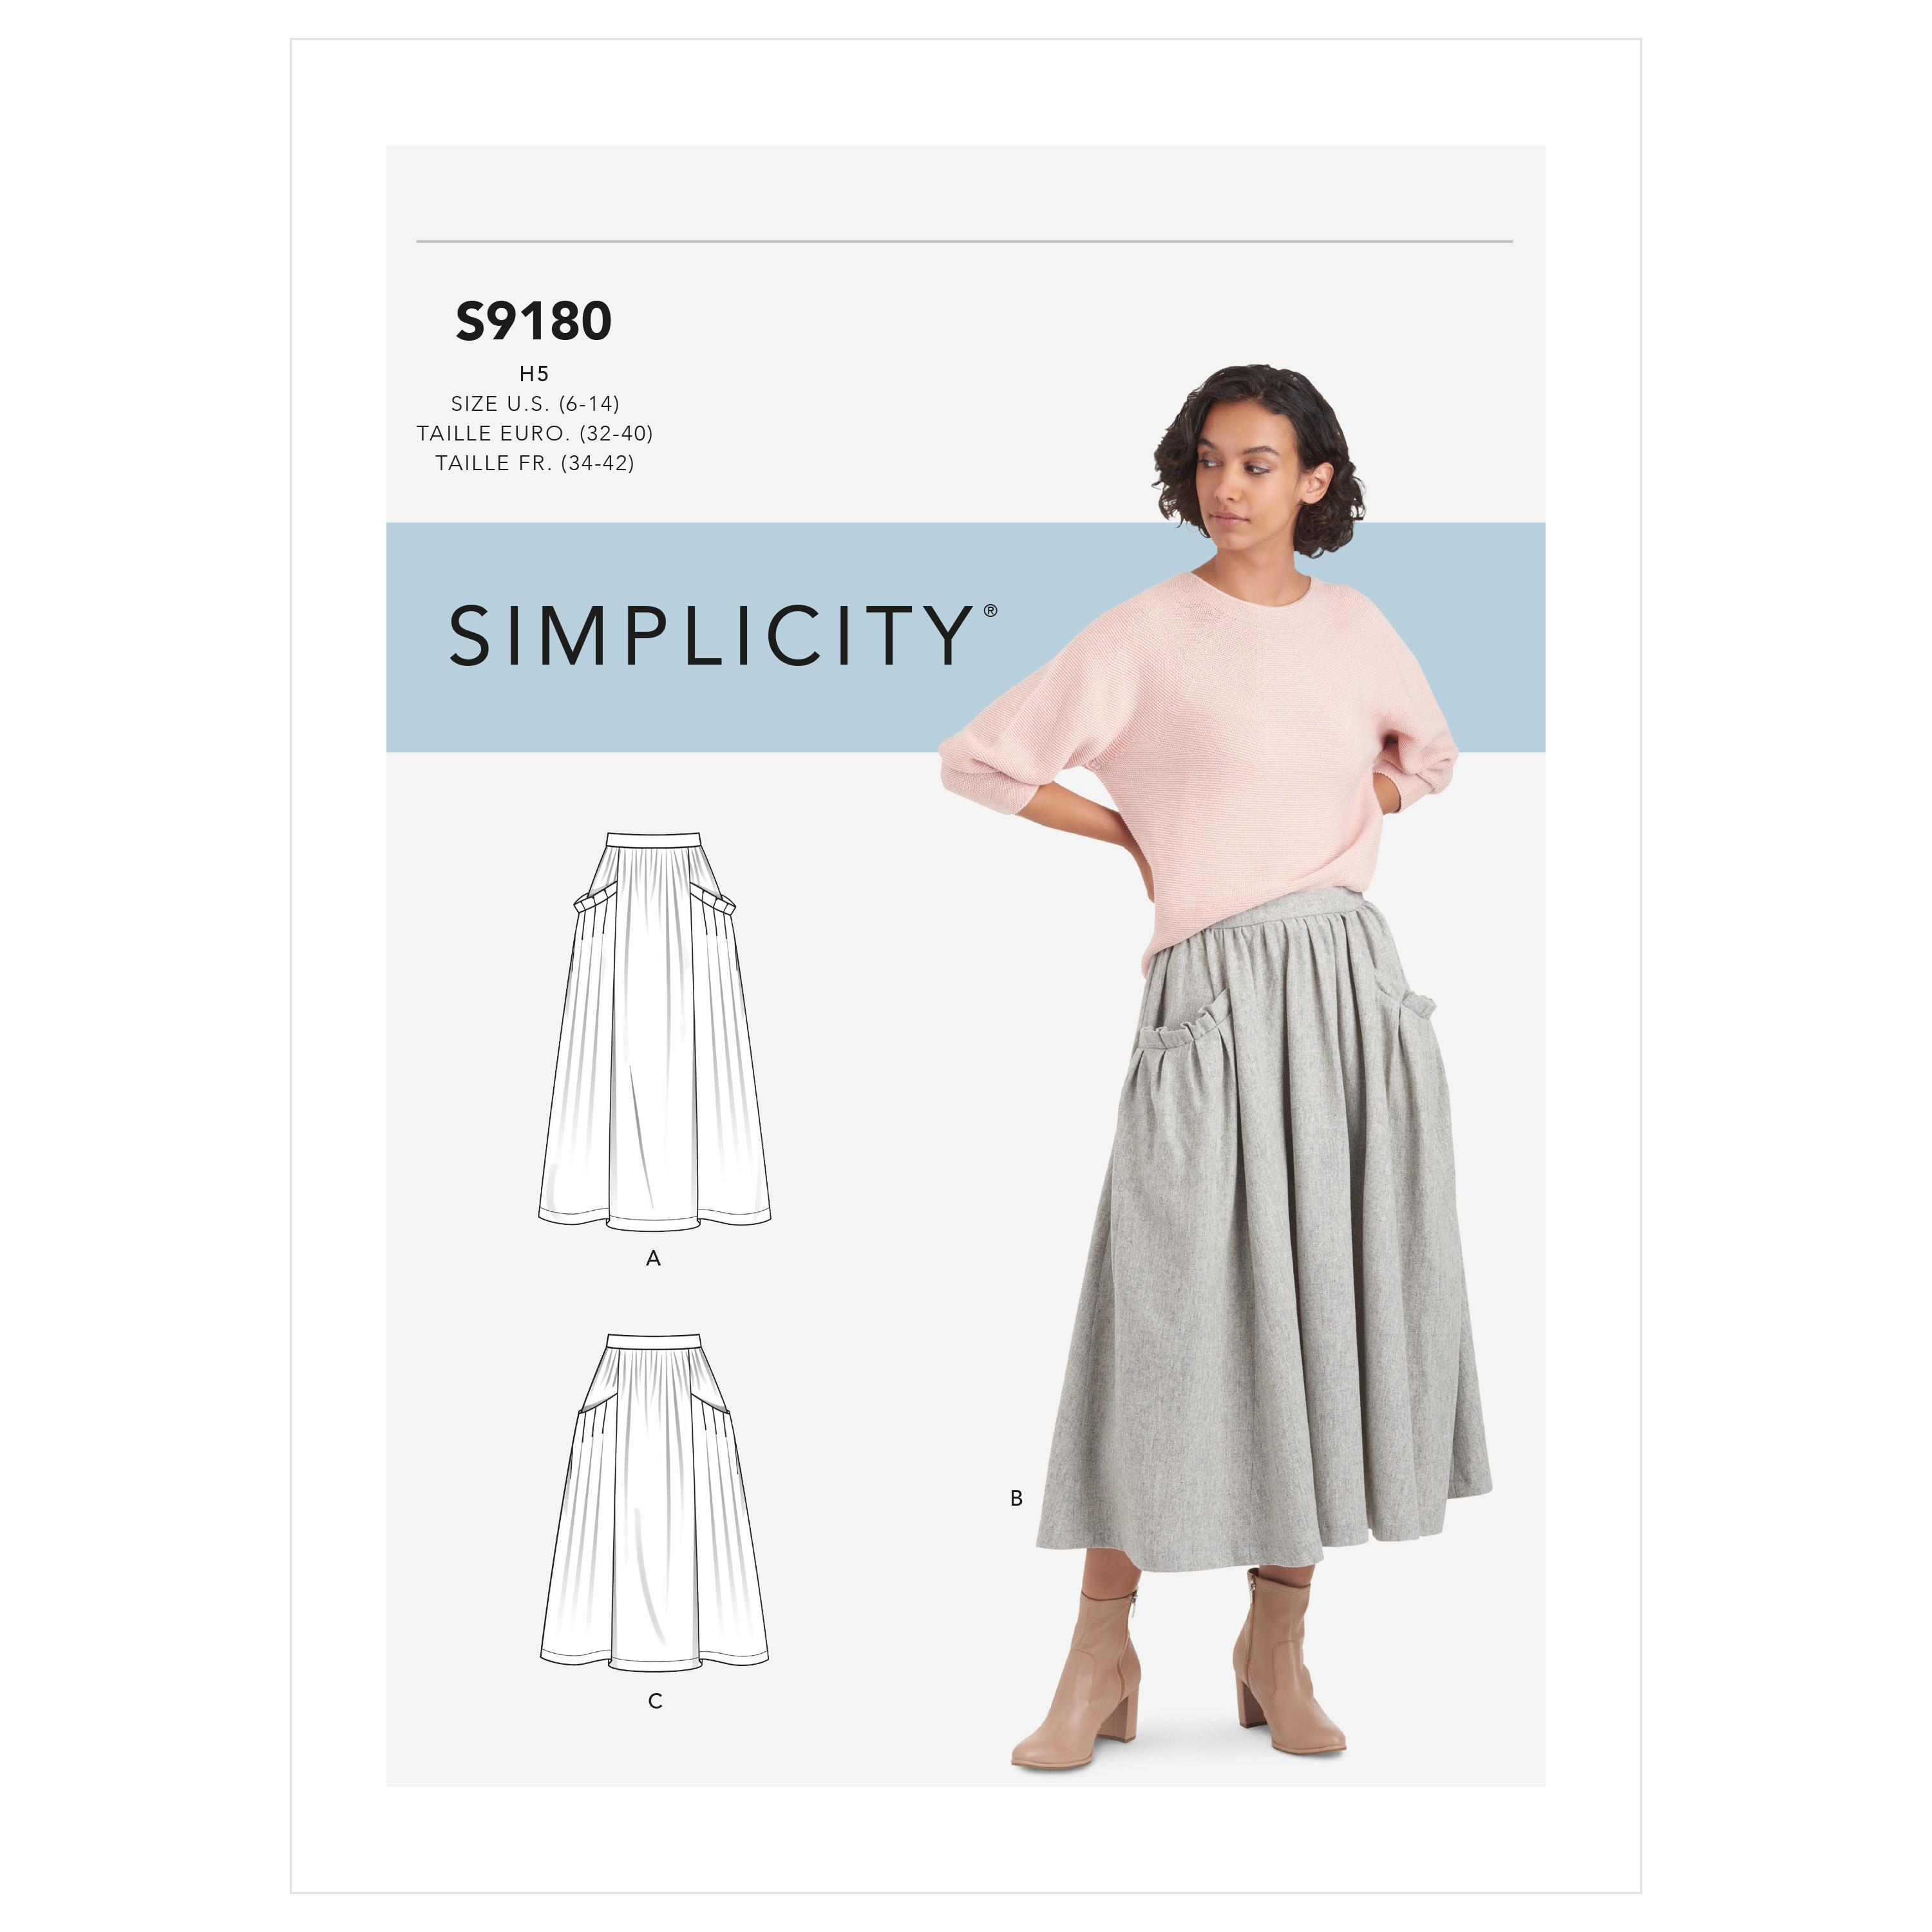 Simplicity Sewing Pattern S9180 Misses' Skirts